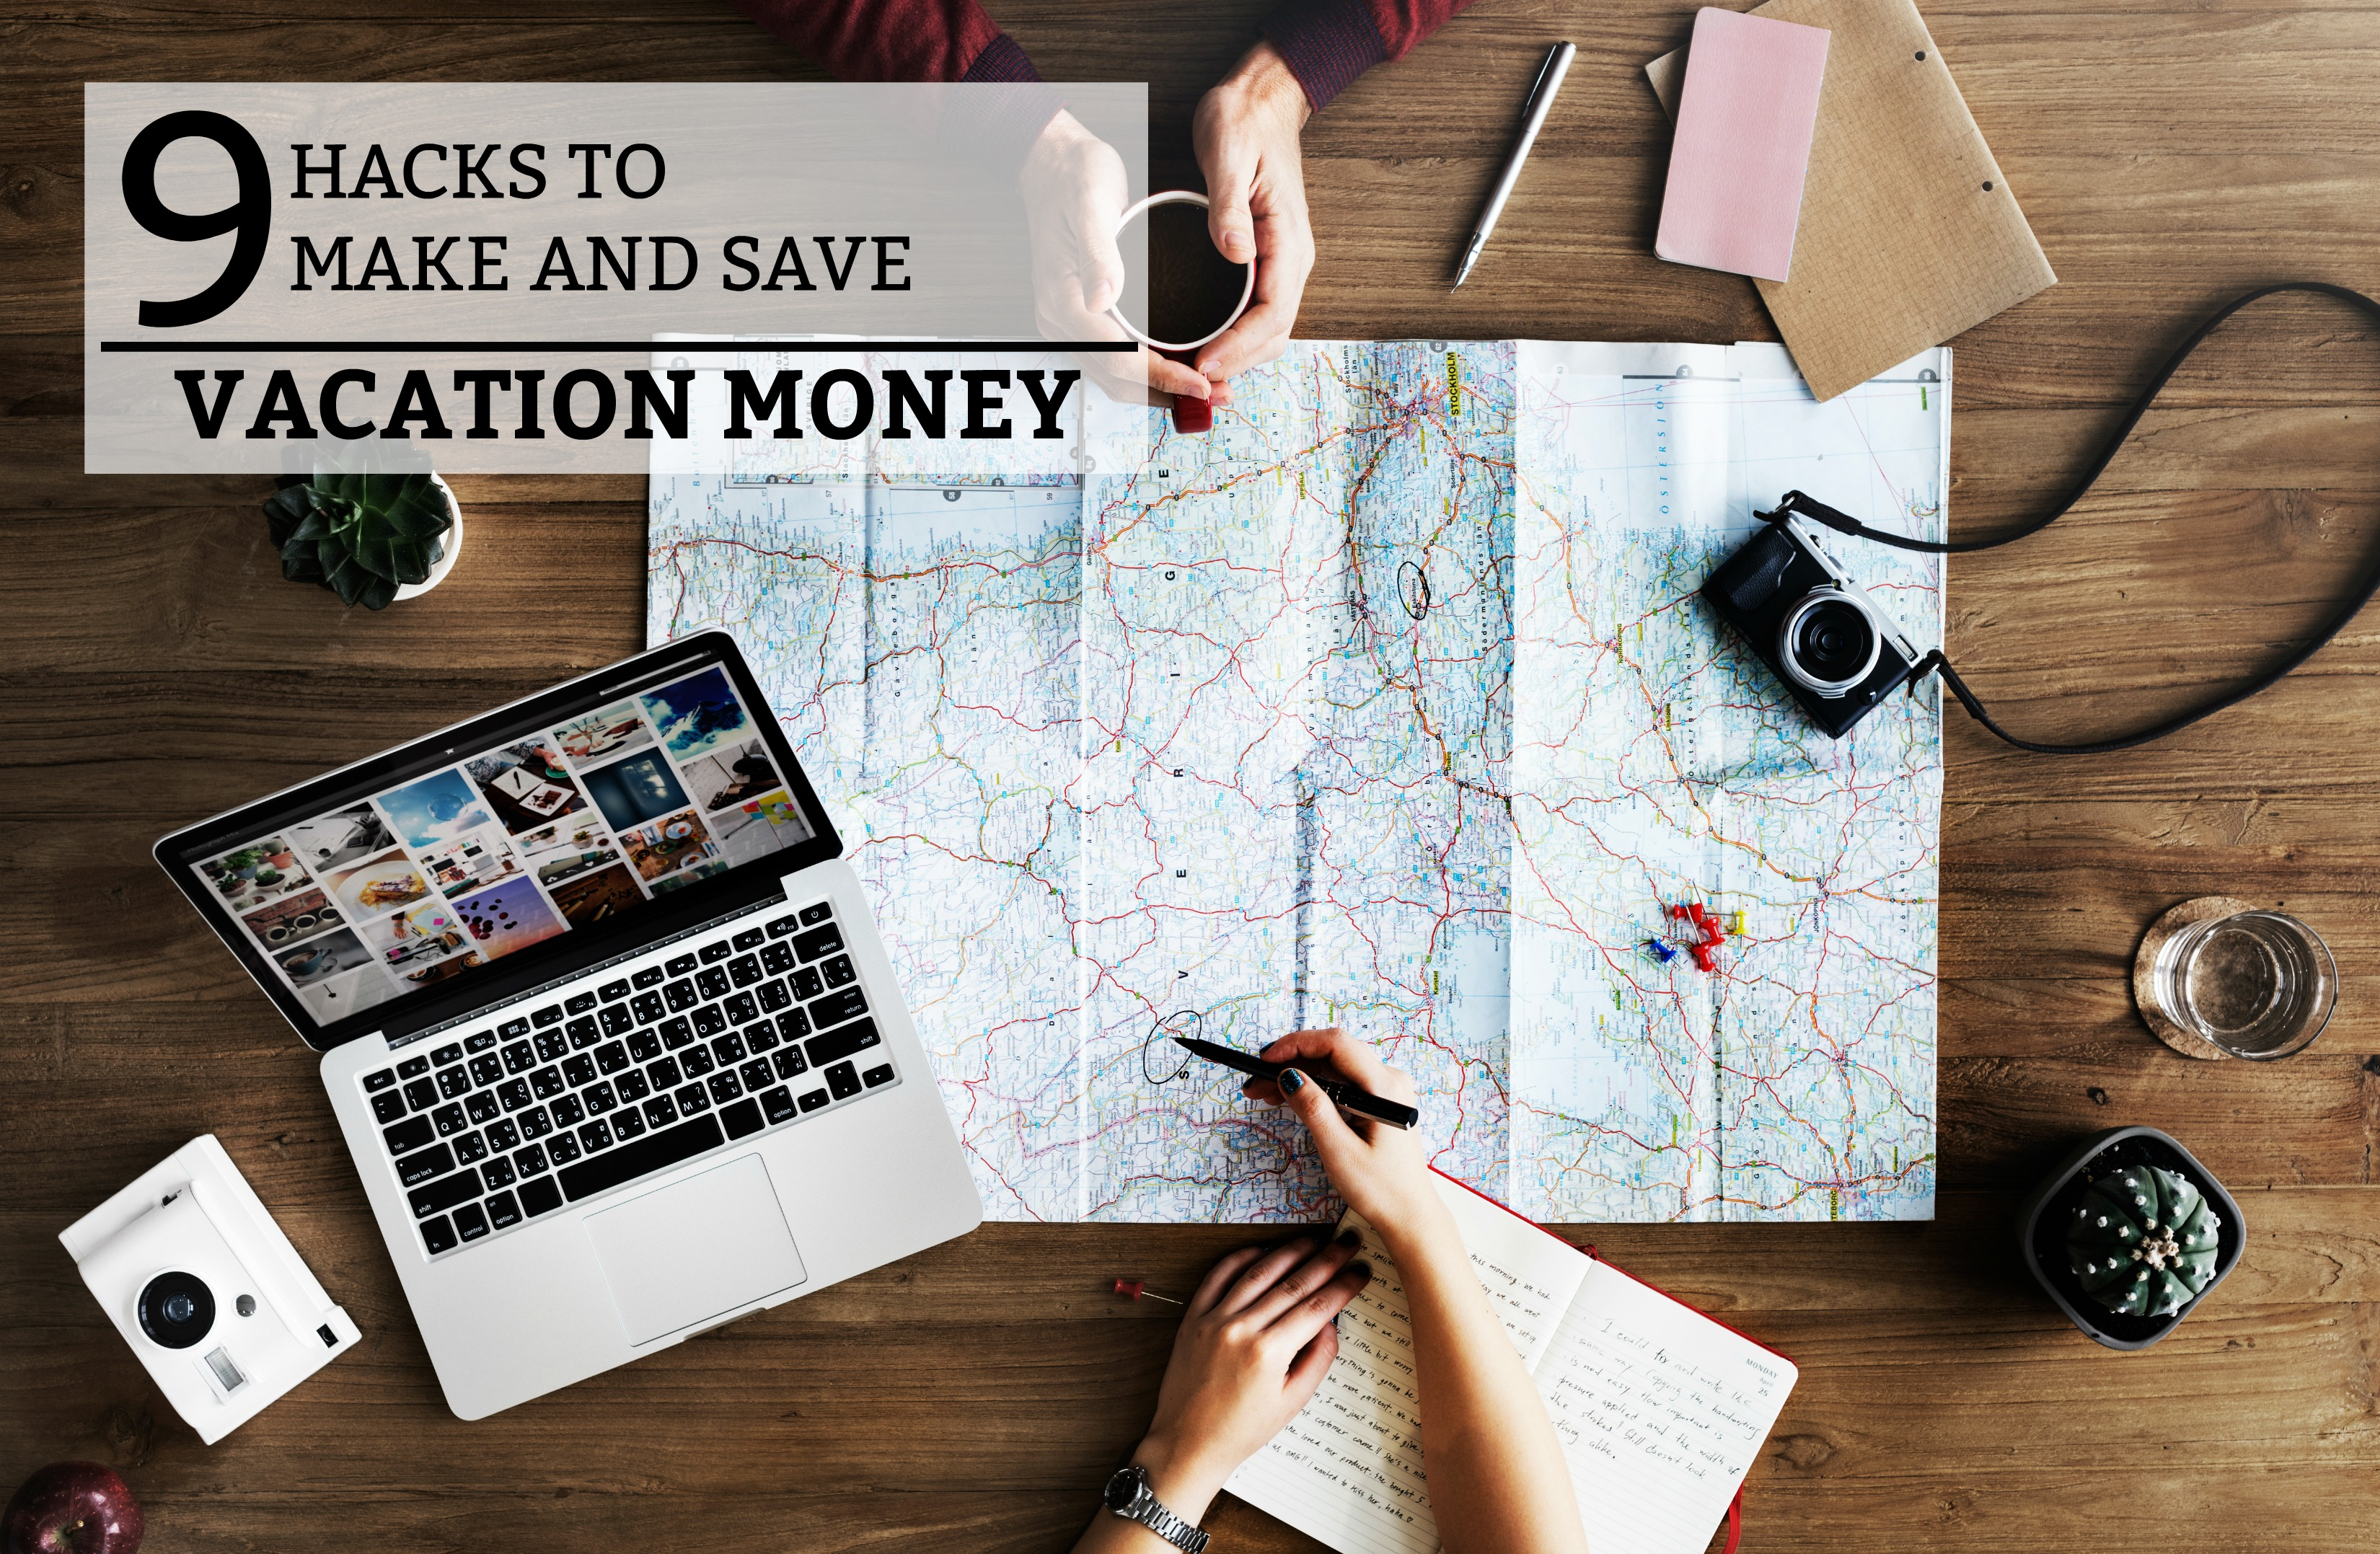 9 Hacks to Make and Save Vacation Money - a guide to vacationing on a budget. www.tradingaverage.com